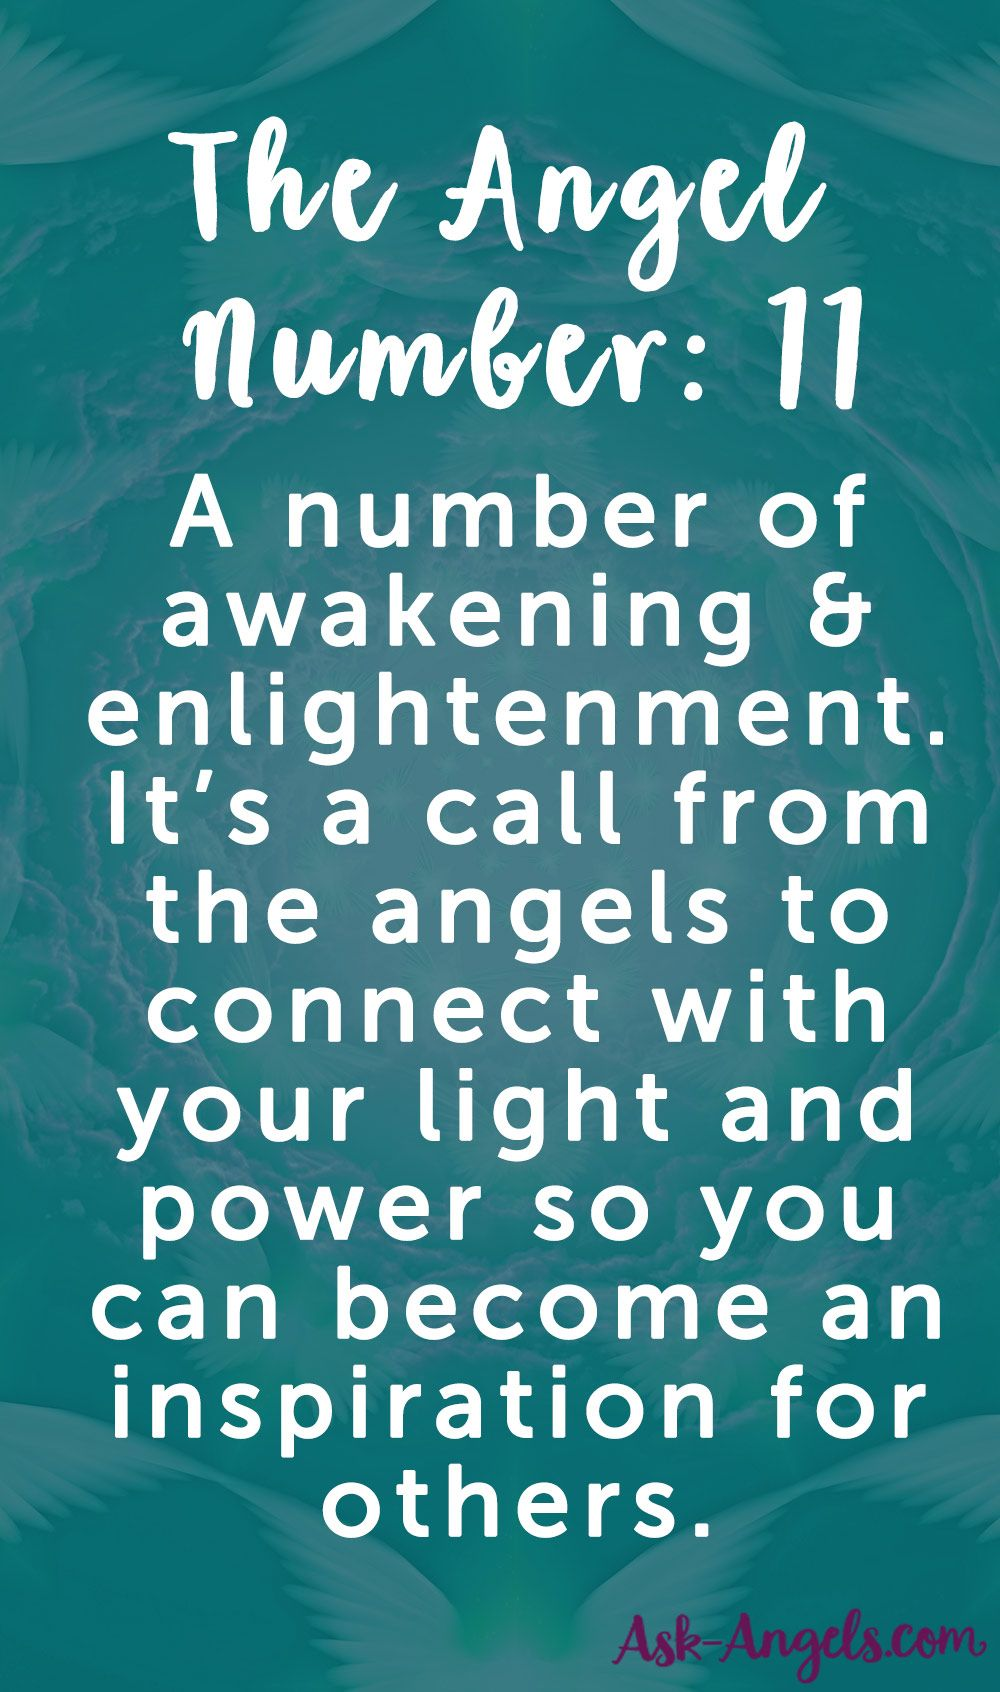 The Angel Number 11 Is A Number Of Awakening And Enlightenment Learn More About What It Means Here